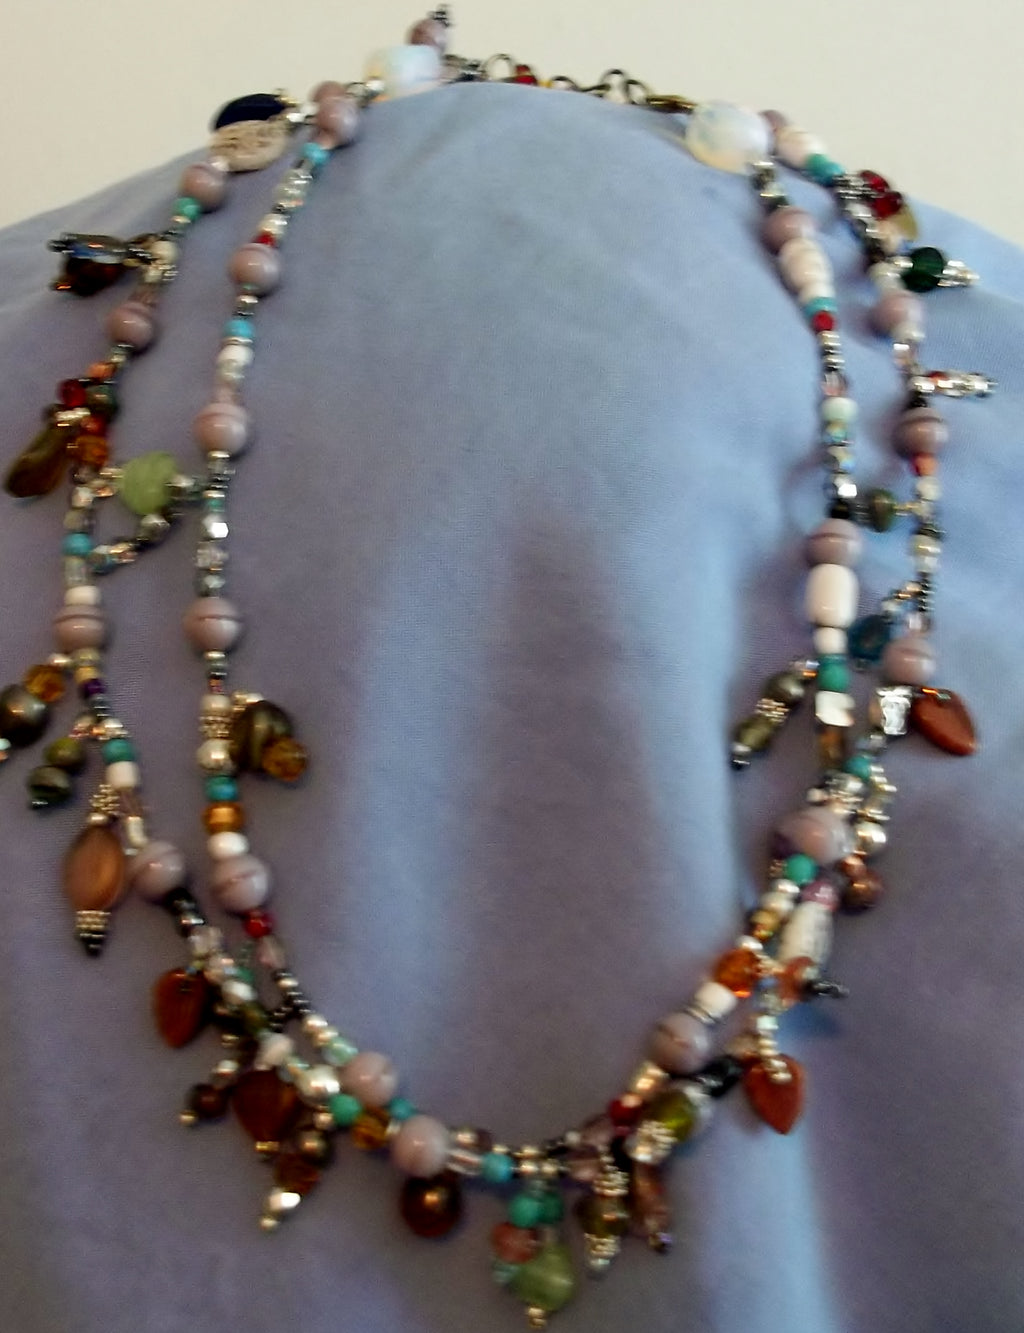 Surprise Necklace - It Is Full of Beautiful Beads in Shapes that will Surprise You